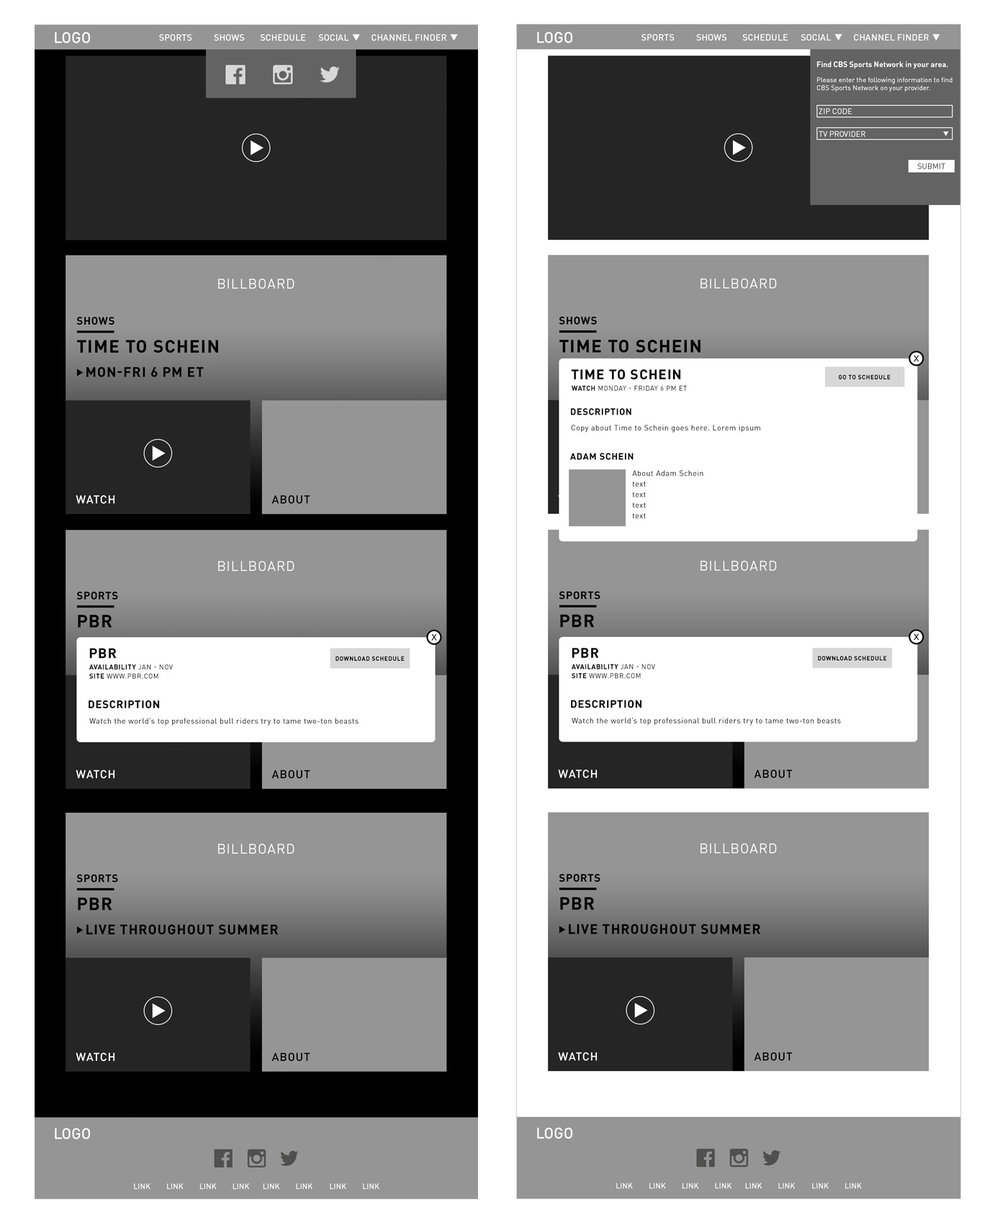 Wireframes 4-5: